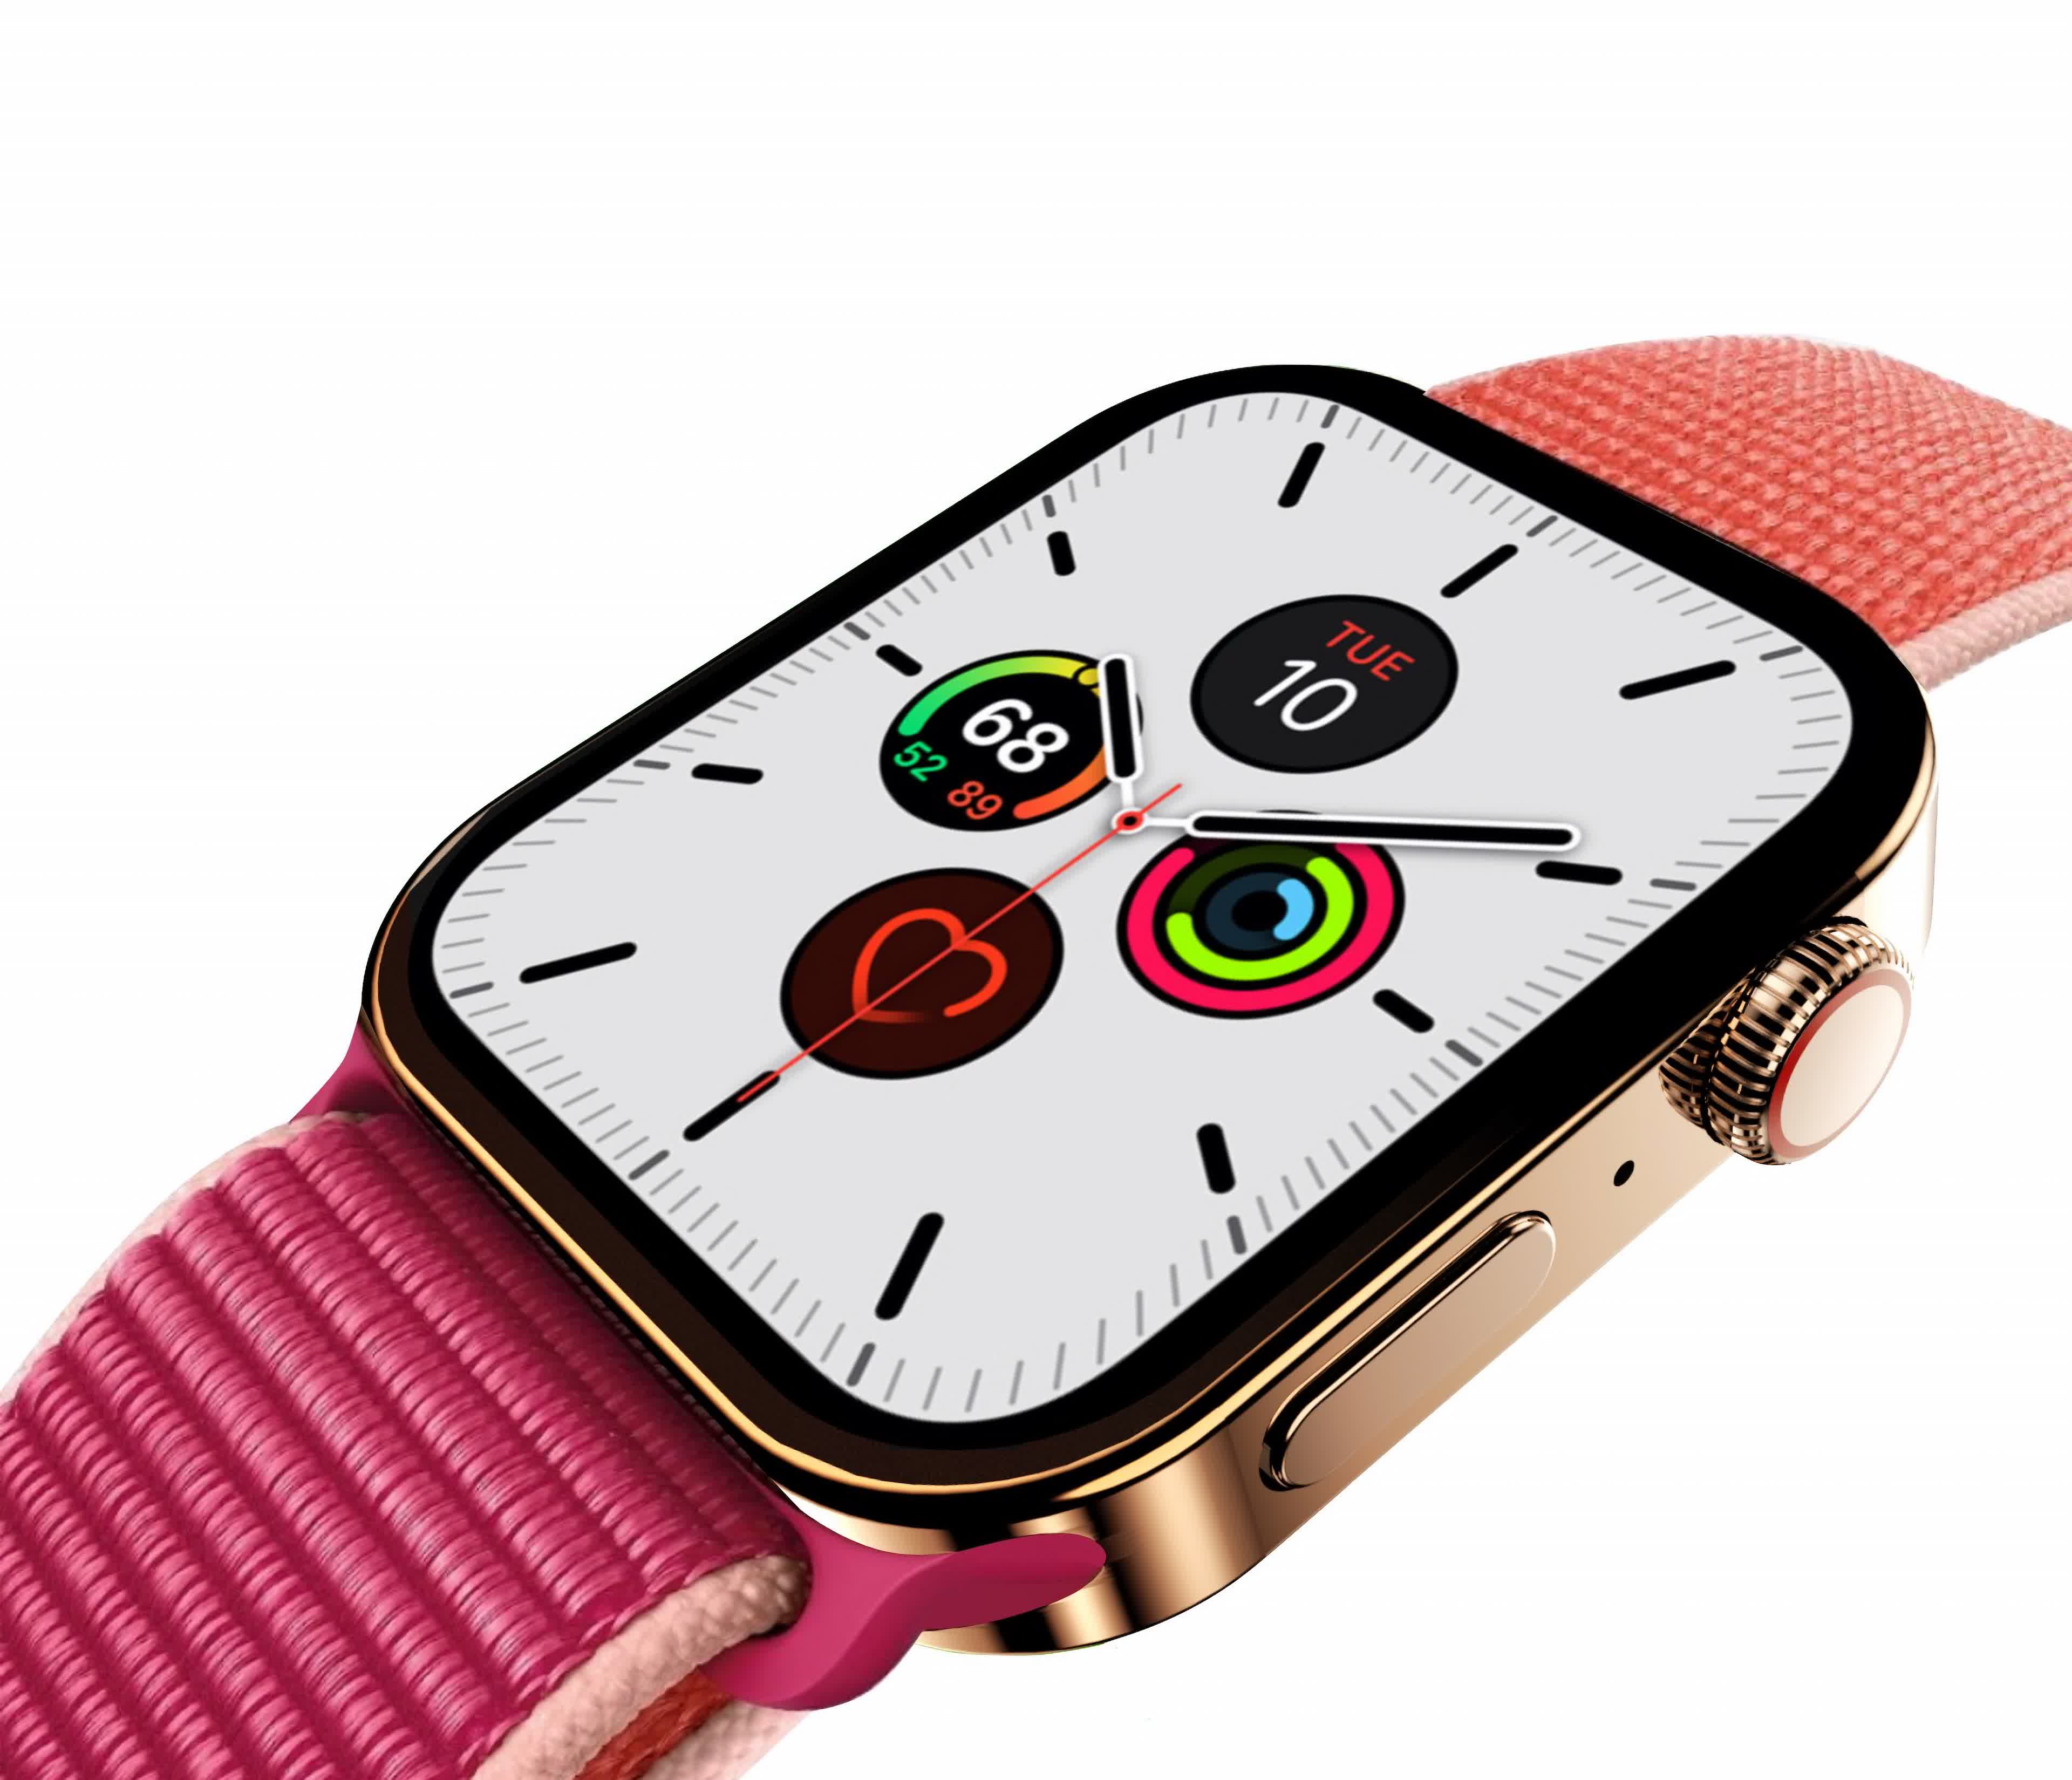 Apple Watch Series 7 rumored with a flat-edged case, larger display sizes